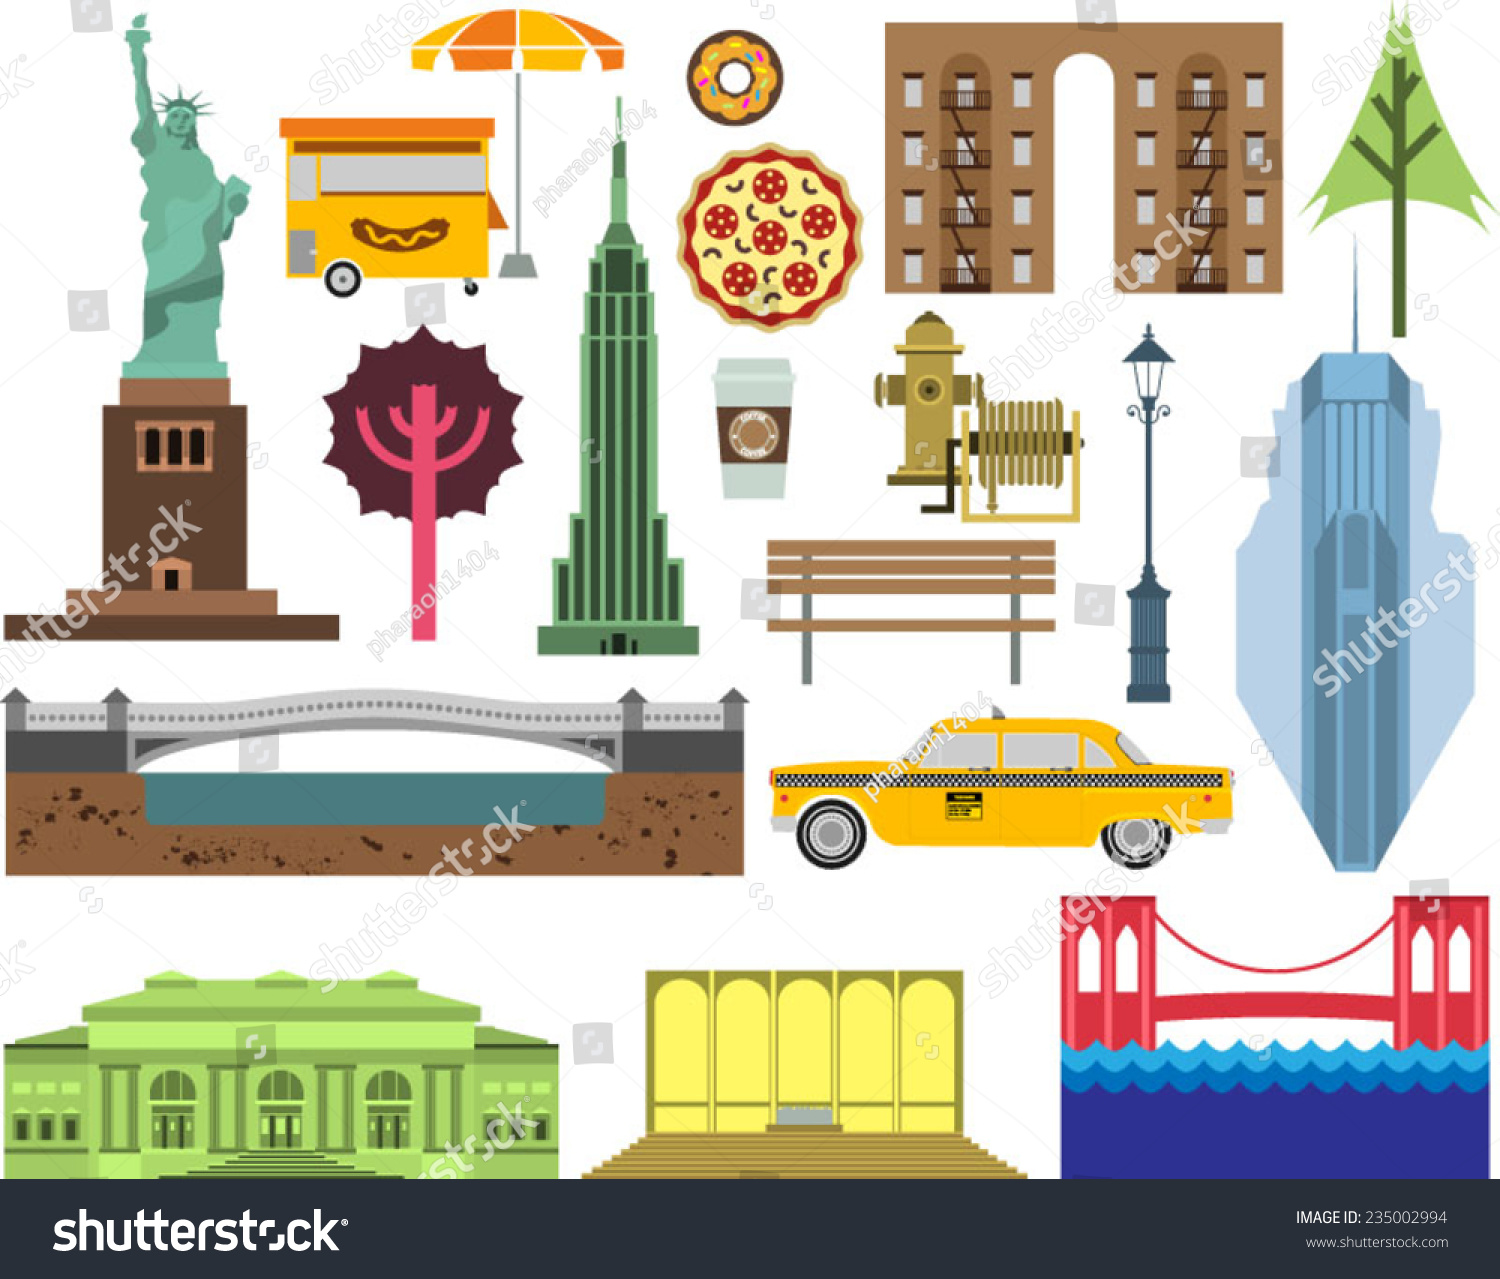 Vector new york city street icon stock vector 235002994 shutterstock vector new york city street icon set a set of new york symbols and landmarks buycottarizona Image collections